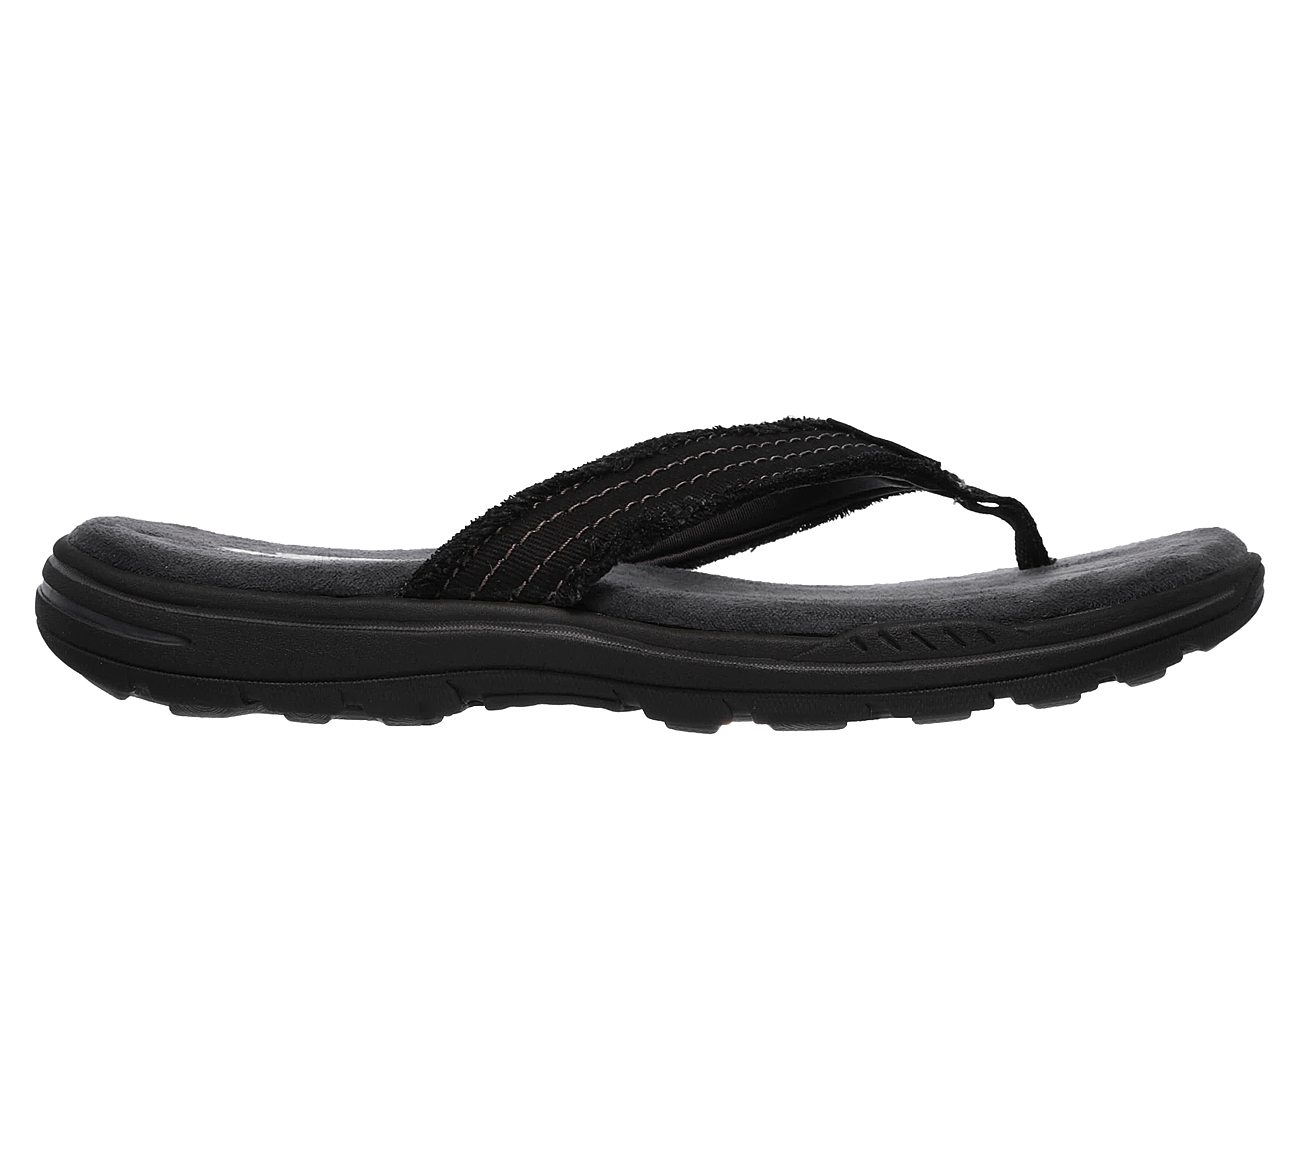 b5a423908 Buy SKECHERS Relaxed Fit  Evented - Arven SKECHERS Relaxed Fit Shoes ...